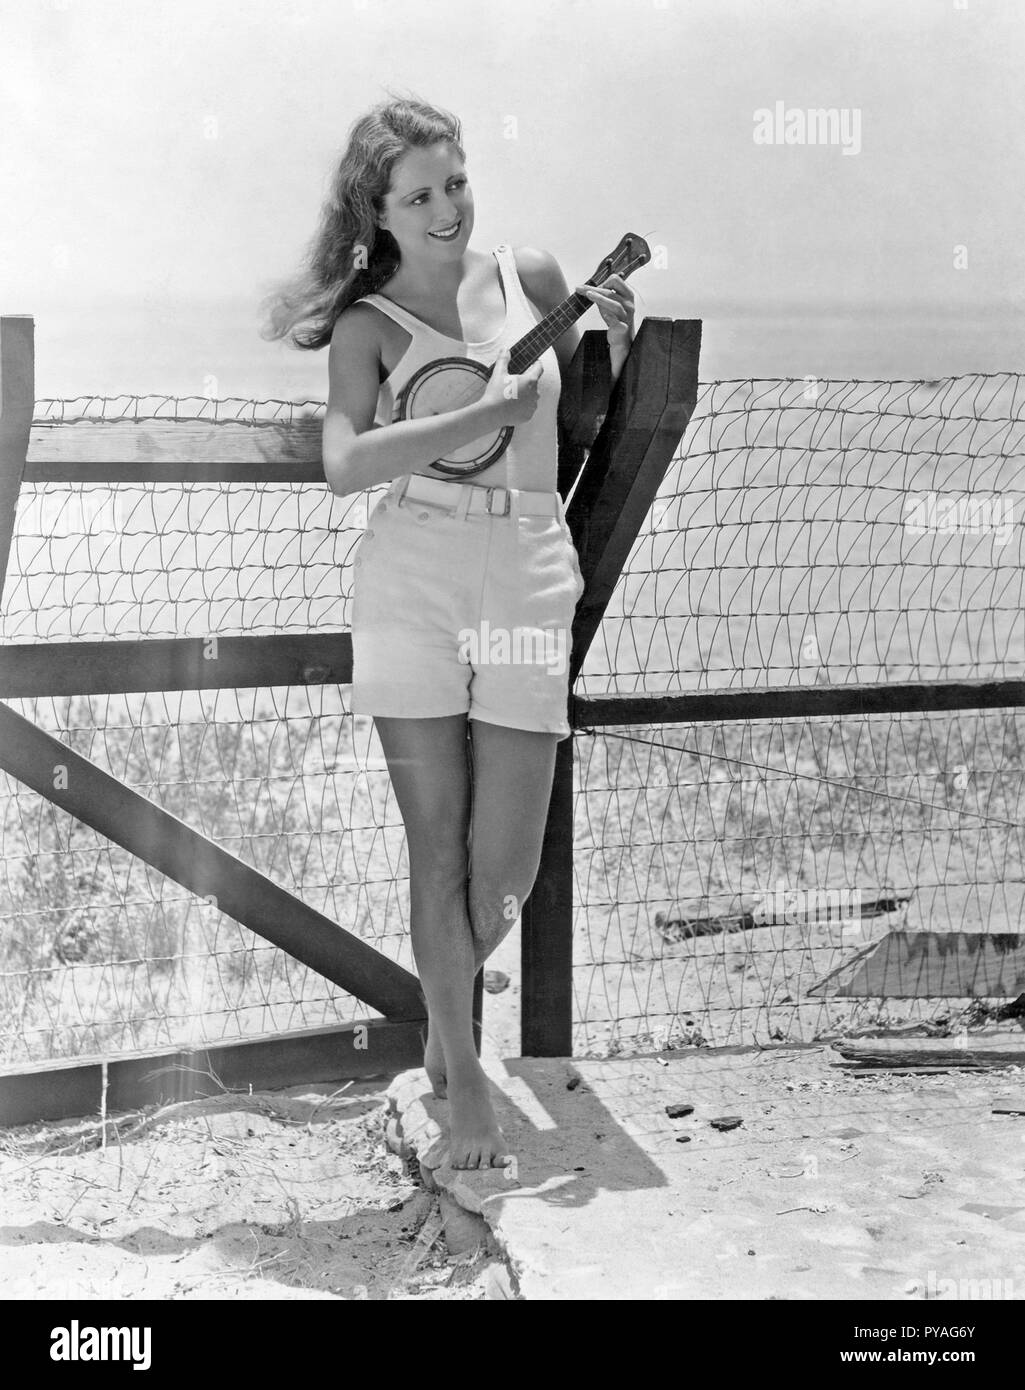 American actress in the 1930s. American actress Billie Dove, 1903-1997. On the beach playing an ukulele. Billie Dove was one of the more popular actresses in the silten films of the 1920s - Stock Image